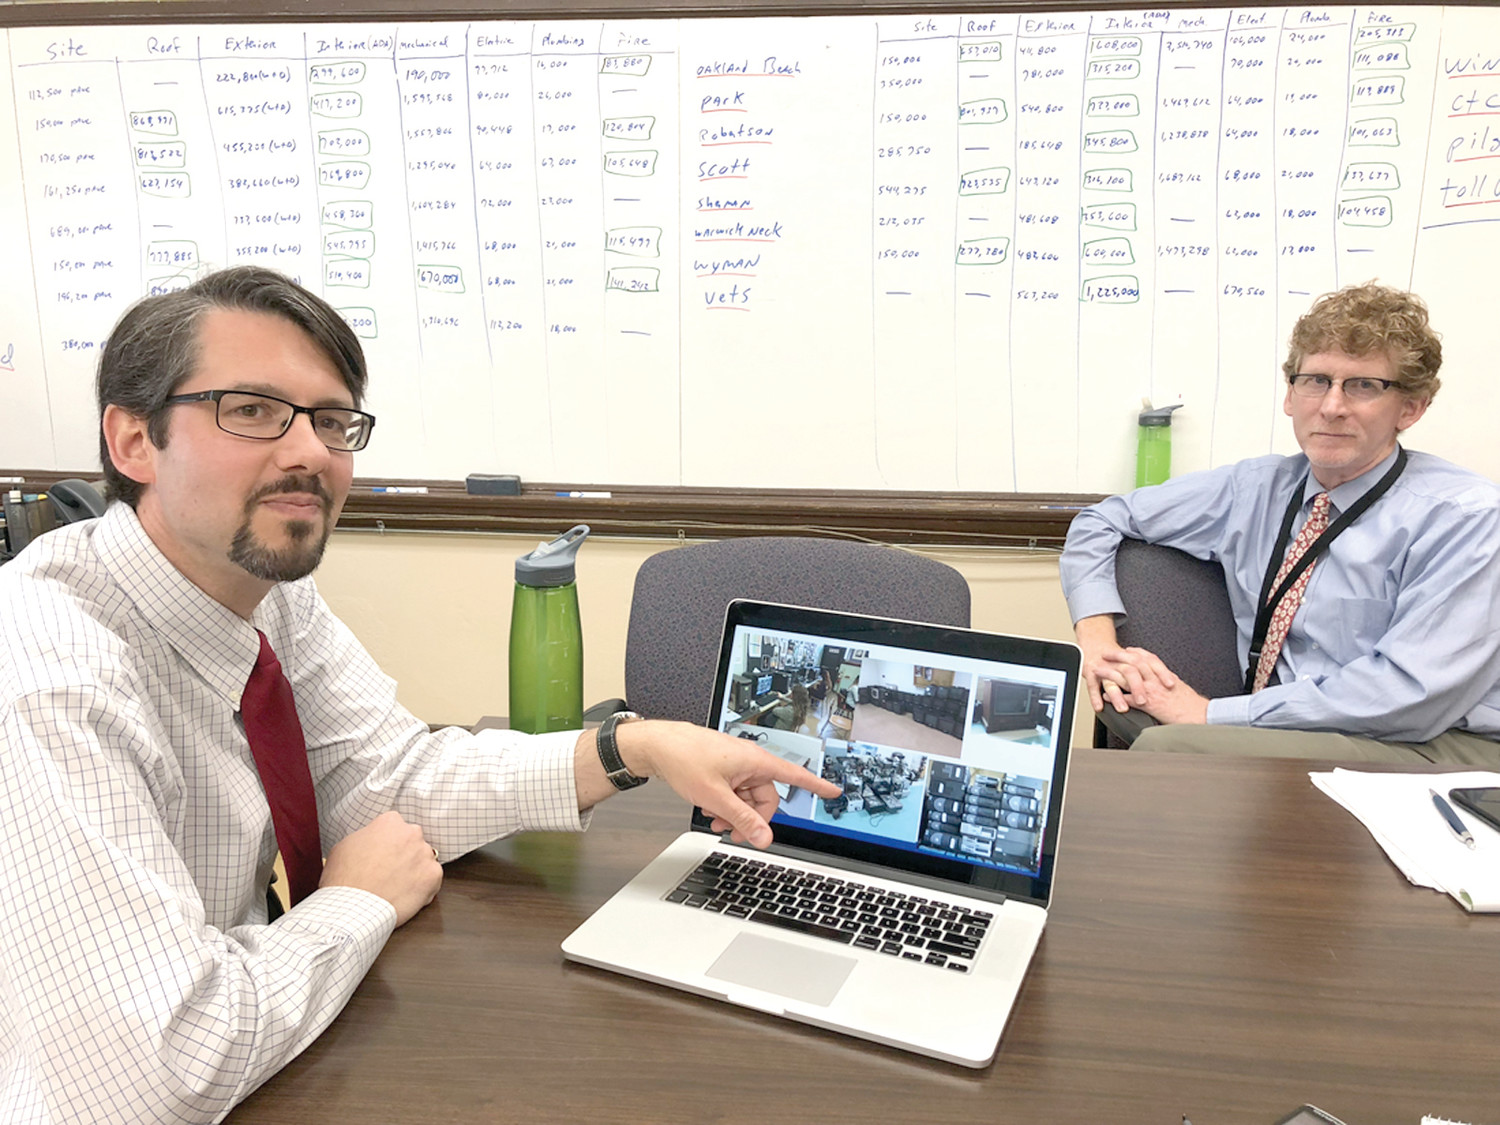 THE WHY AND HOW: Superintendent Philip Thornton (right) and technology director Doug Alexander (left), along with Anthony Ferrucci, finance director (not pictured), gave the reasoning behind the e-wasting policy and how it is carried out.